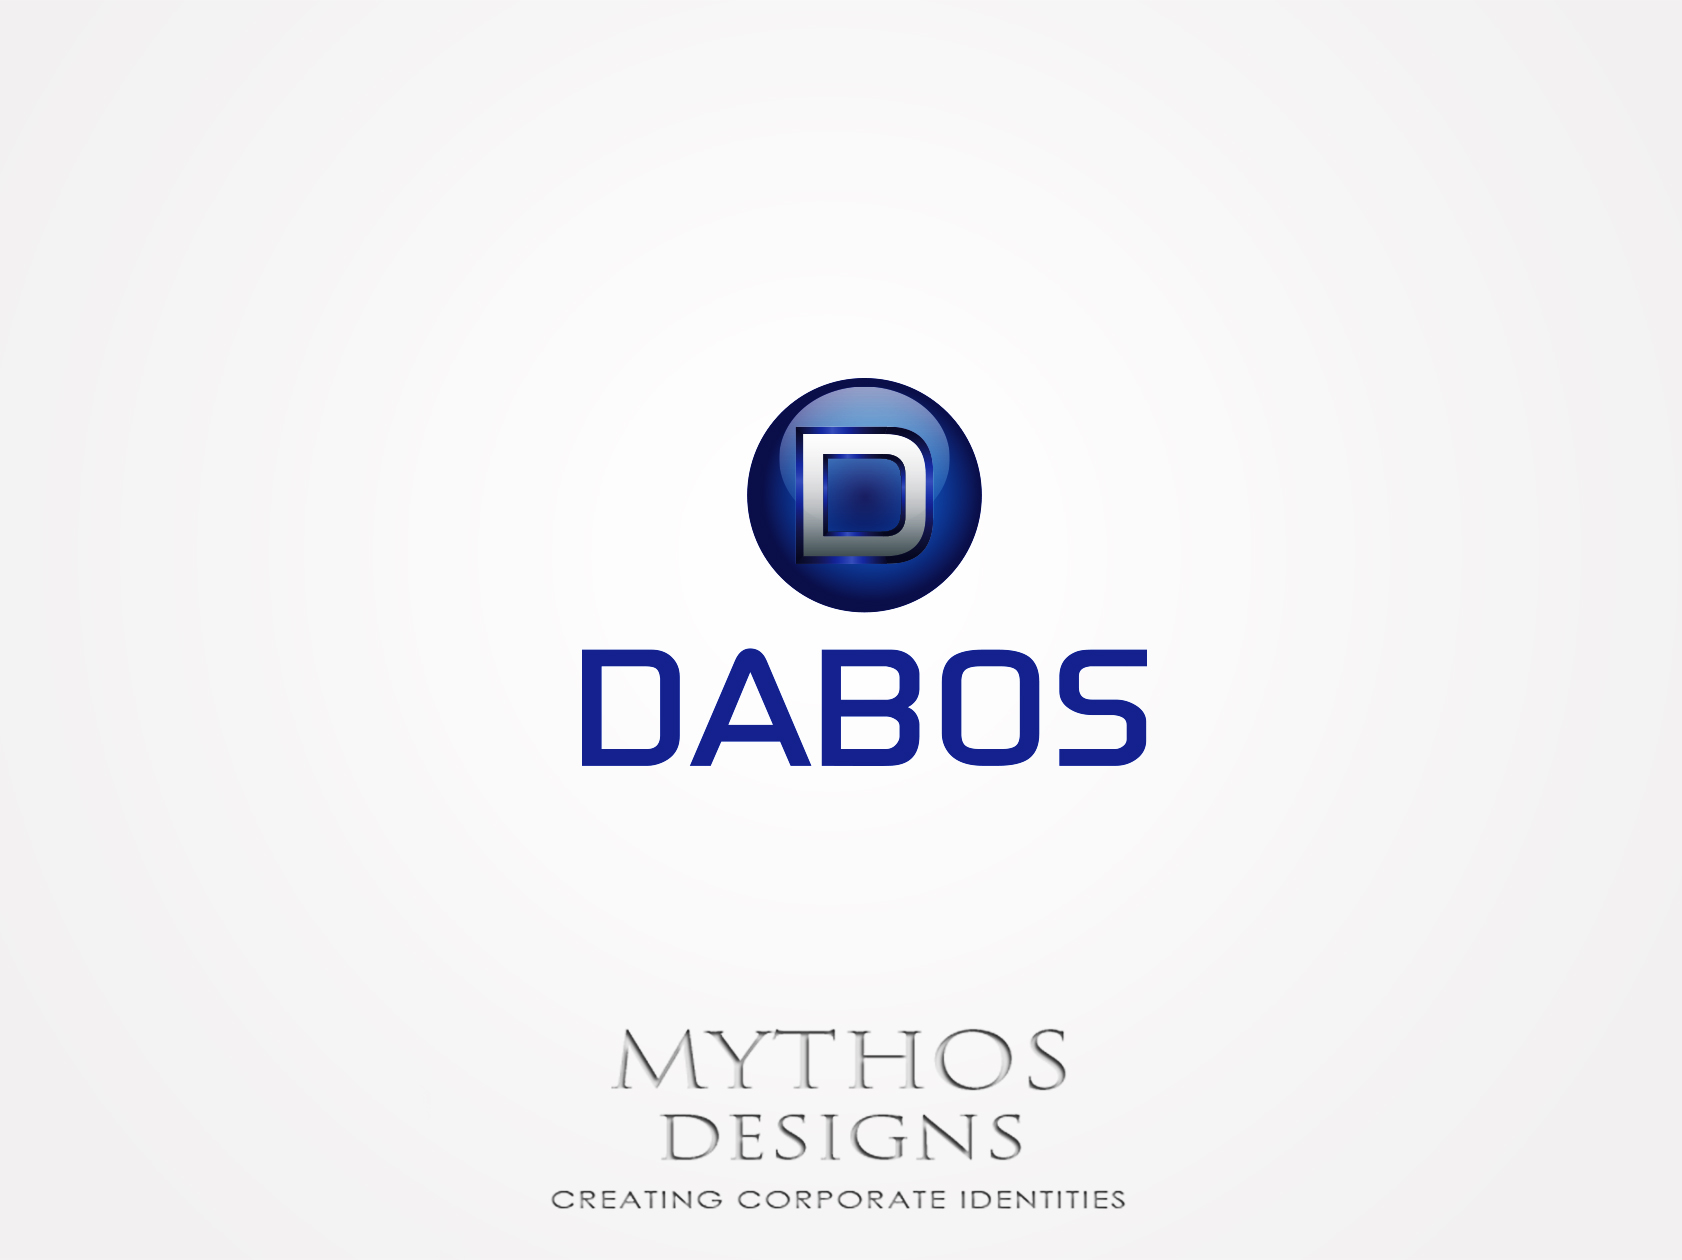 Logo Design by Mythos Designs - Entry No. 163 in the Logo Design Contest Imaginative Logo Design for DABOS, Limited Liability Company.